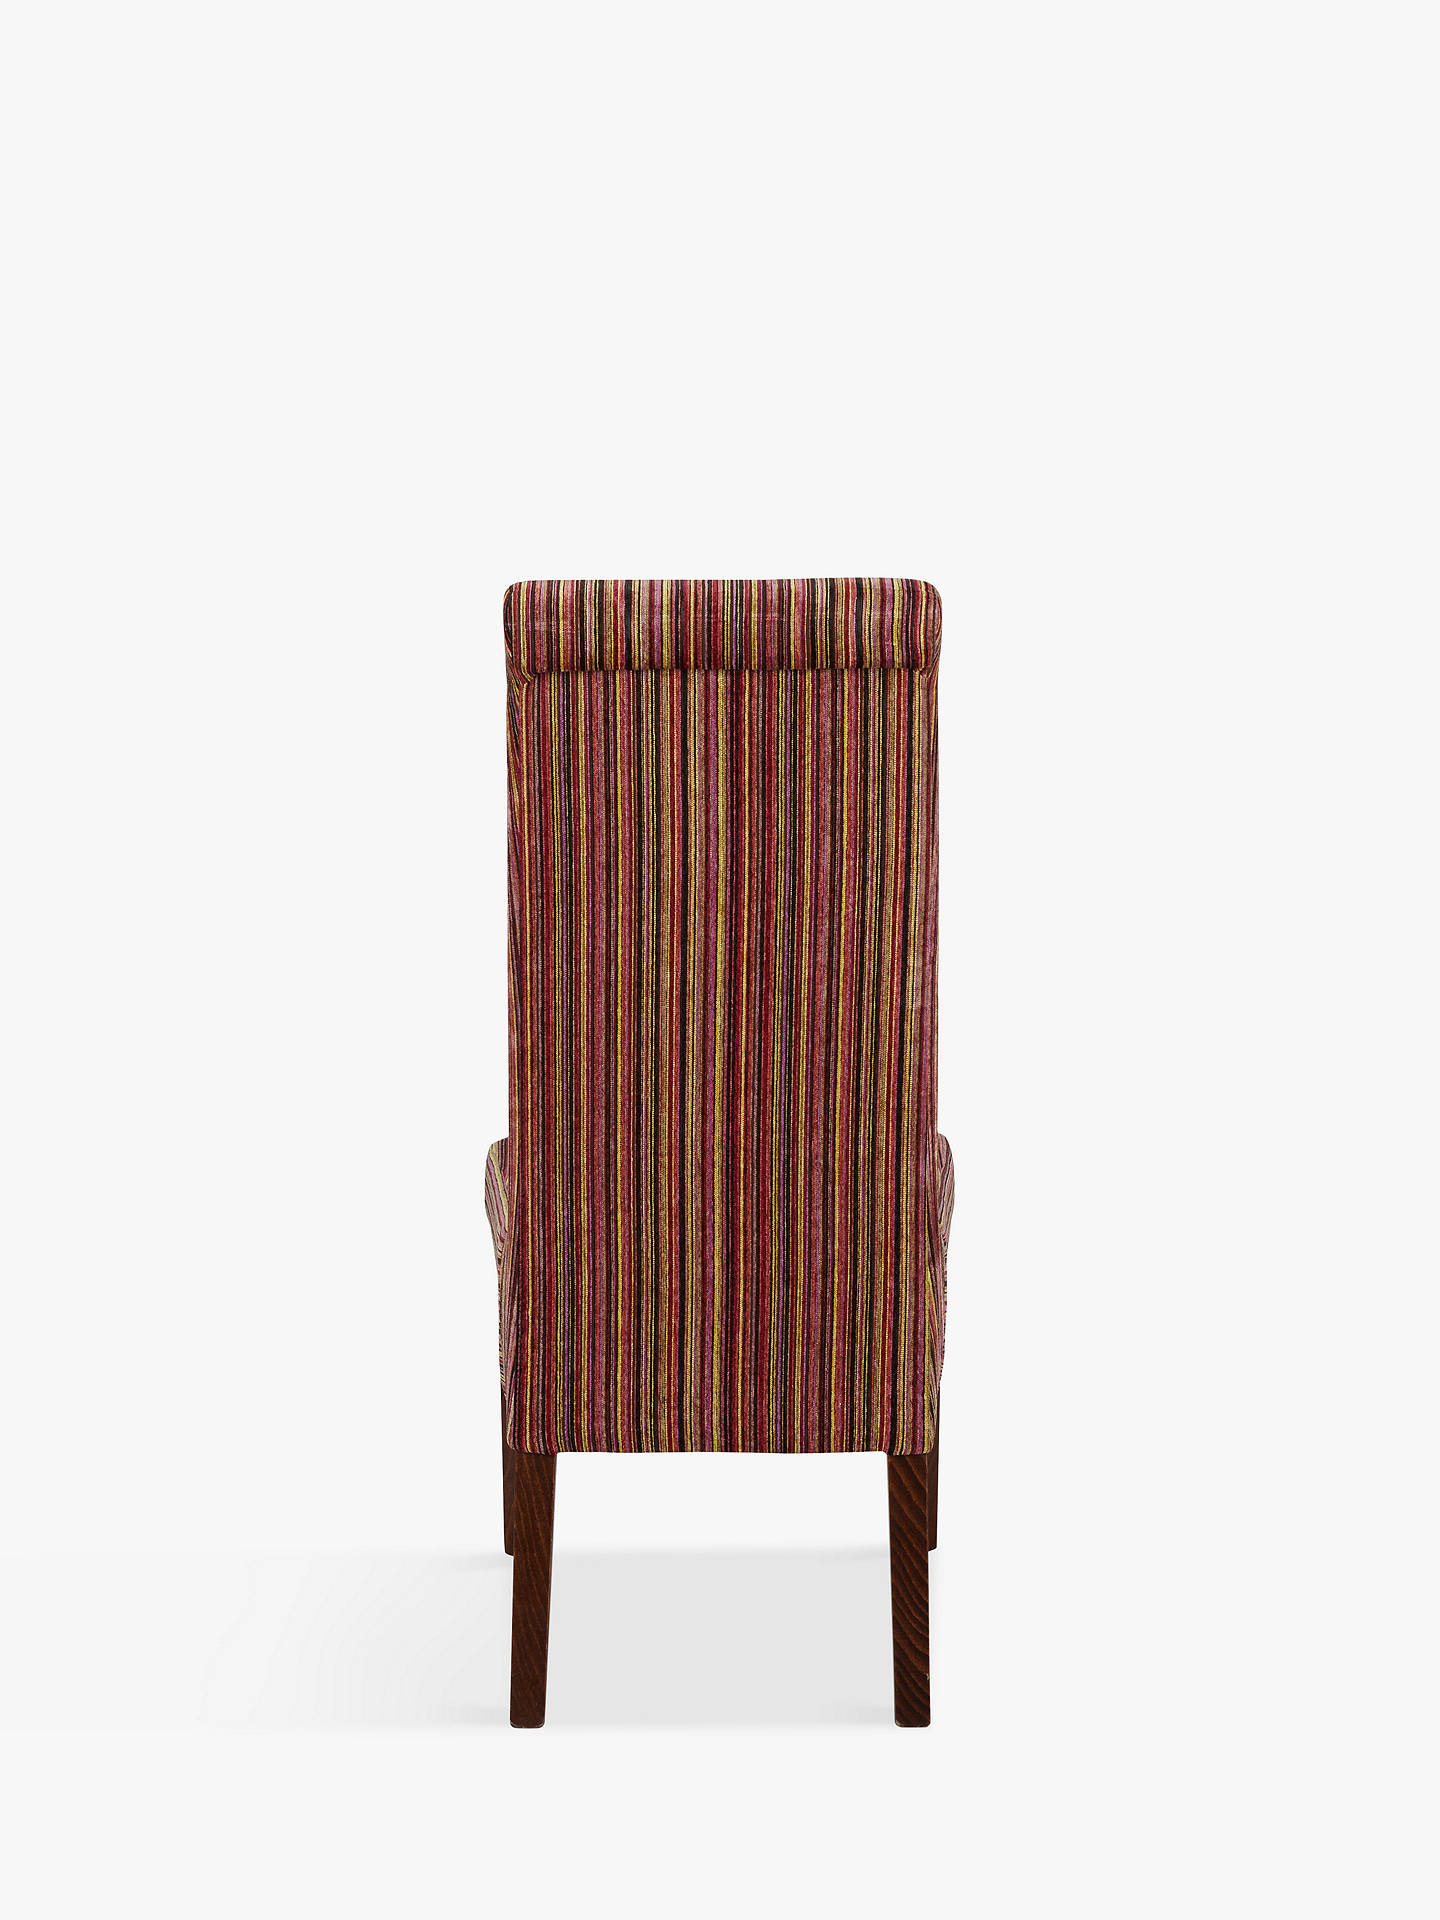 Buy John Lewis & Partners Maharani Upholstered Dining Chair, Raspberry Stripe Online at johnlewis.com